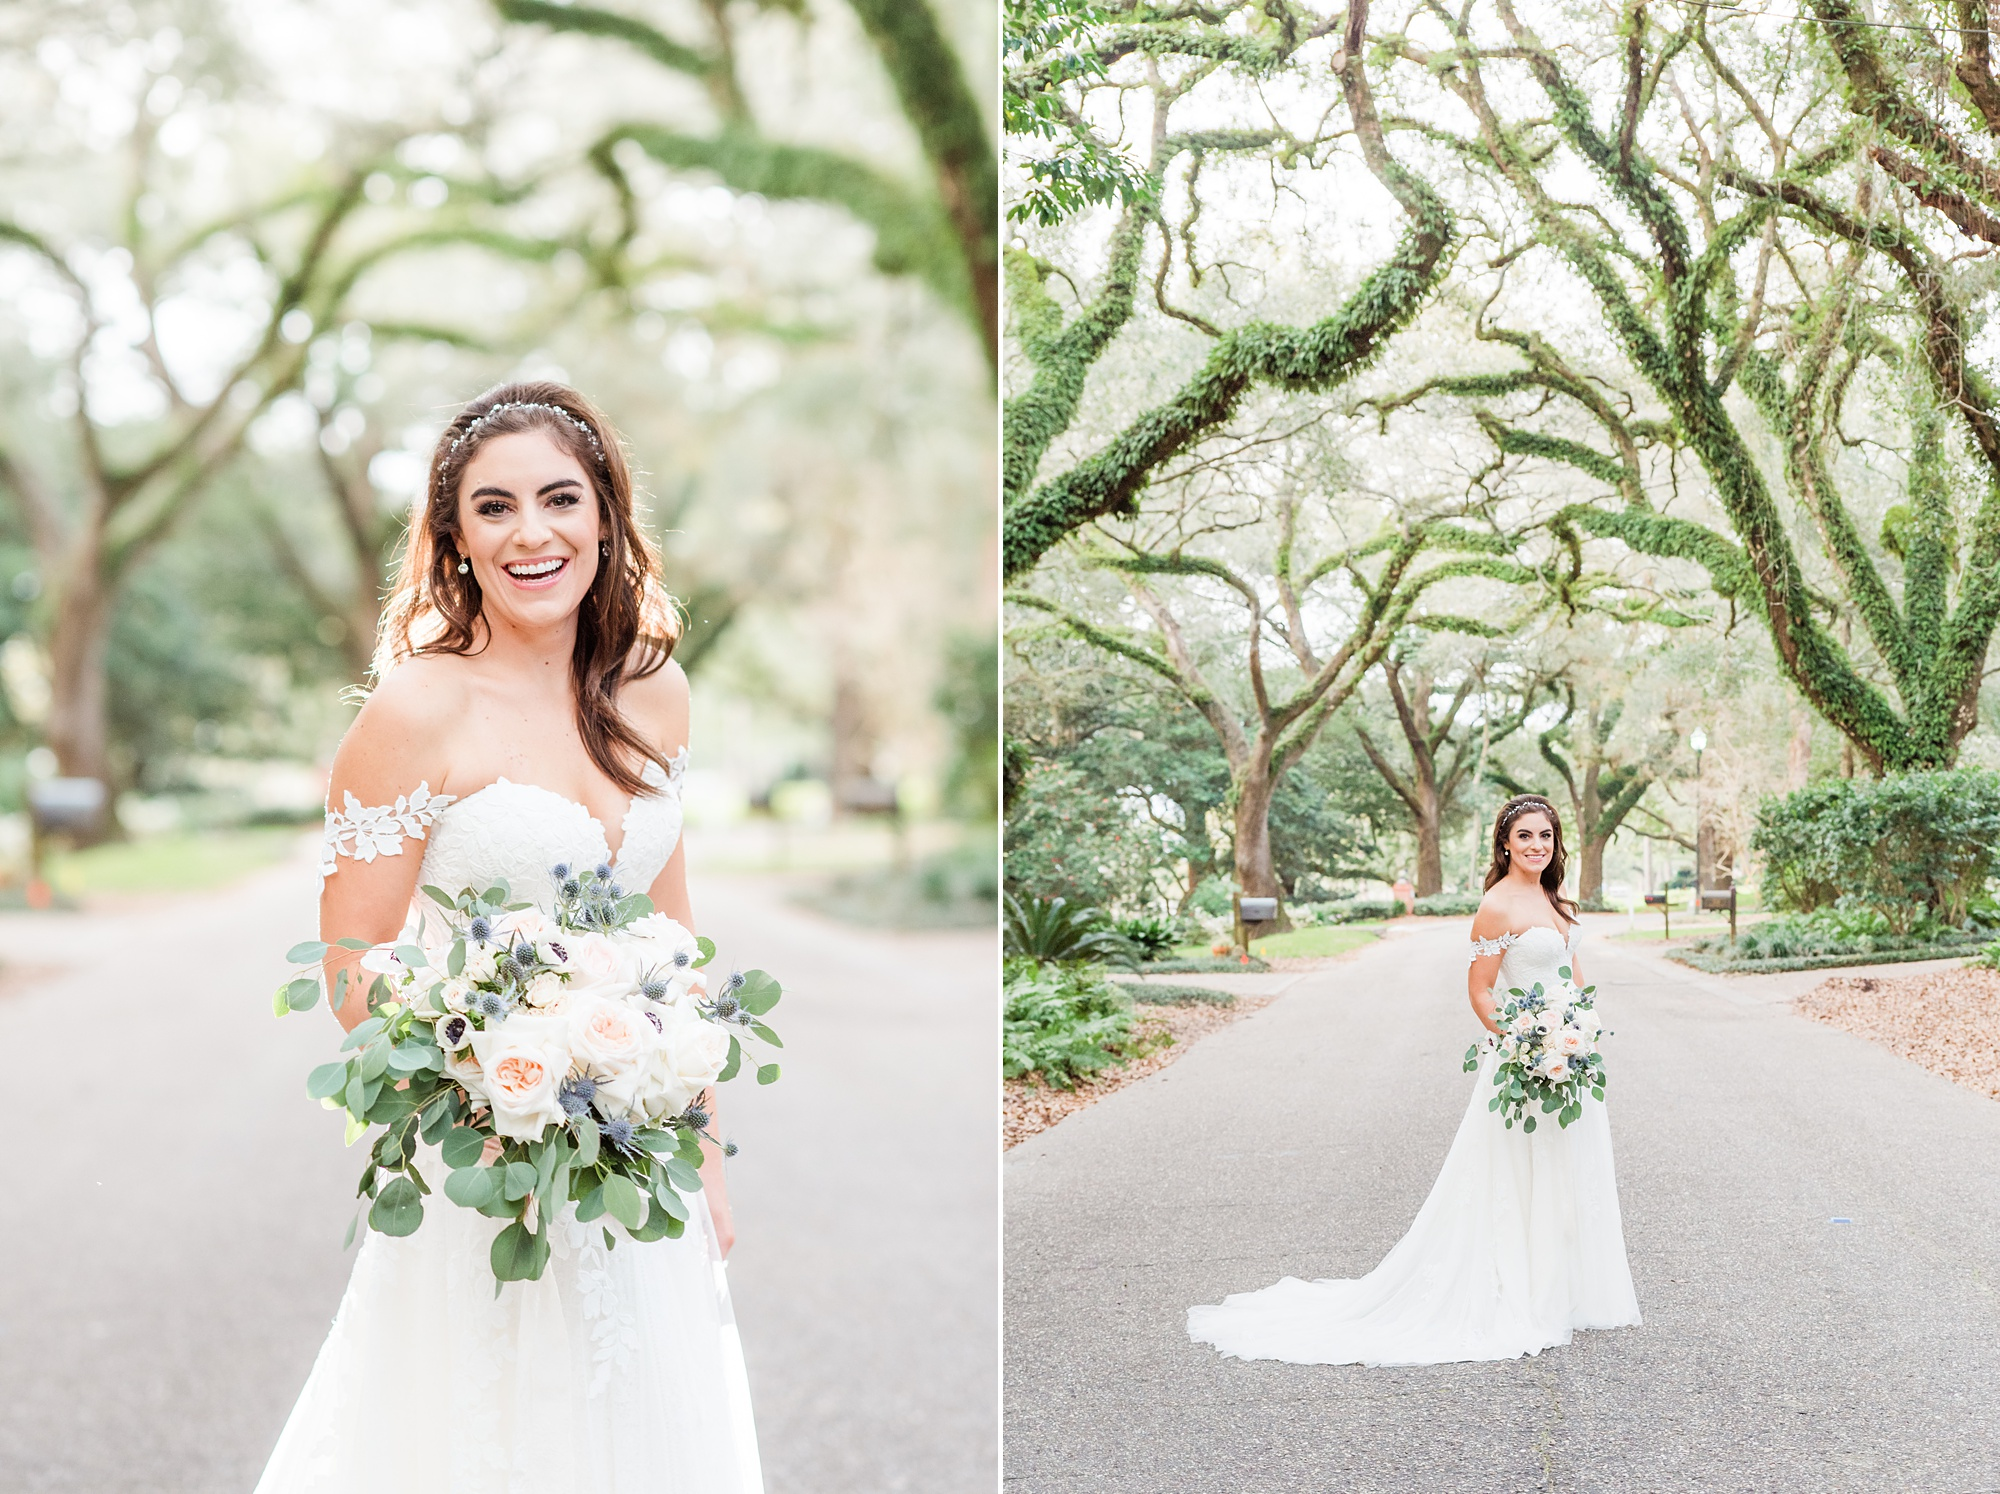 Southern bridal portraits by big trees in Fairhope AL